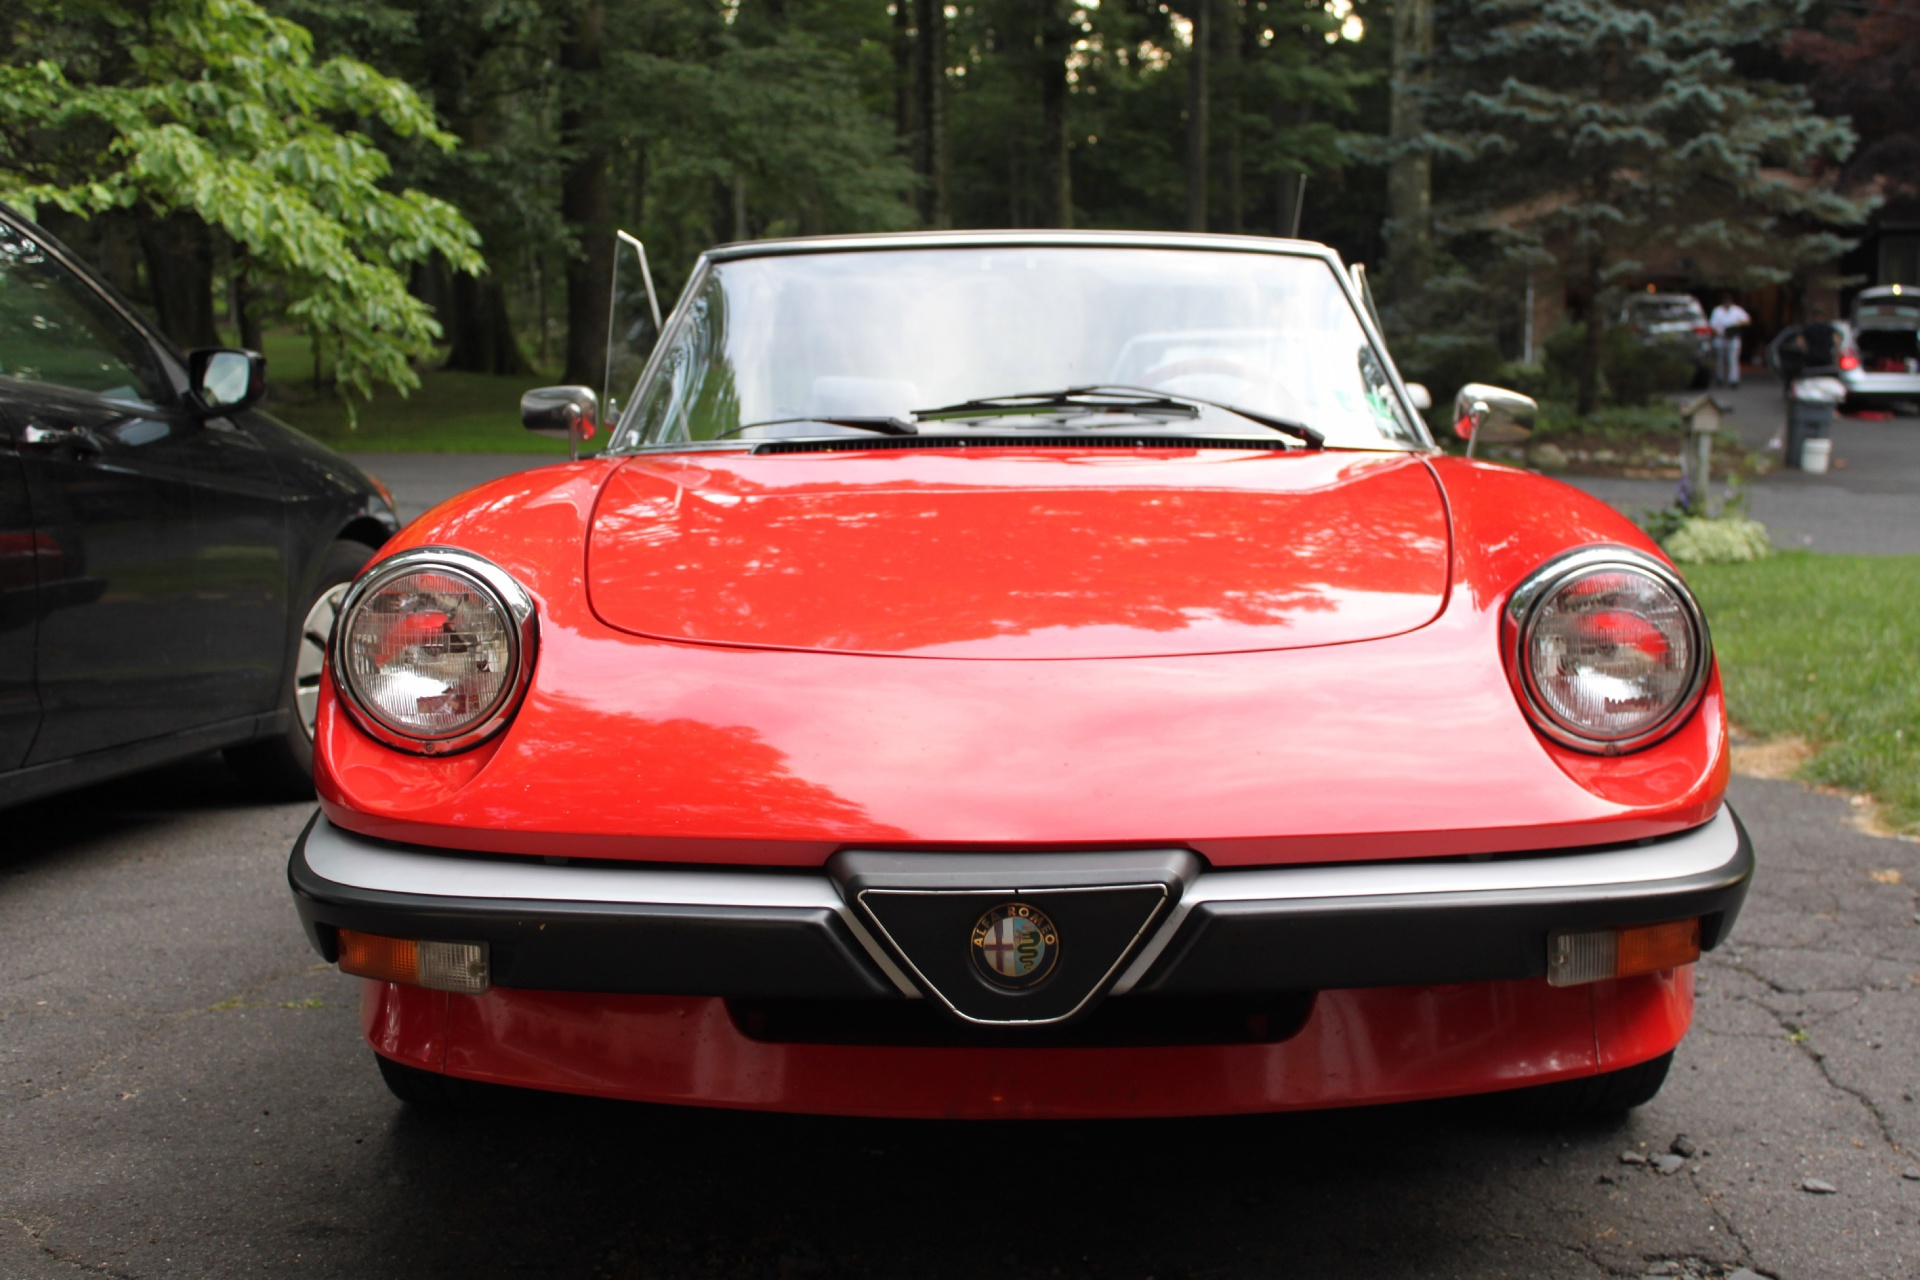 1985 alfa romeo spider stock 2313 126821 for sale near new york ny ny alfa romeo dealer. Black Bedroom Furniture Sets. Home Design Ideas